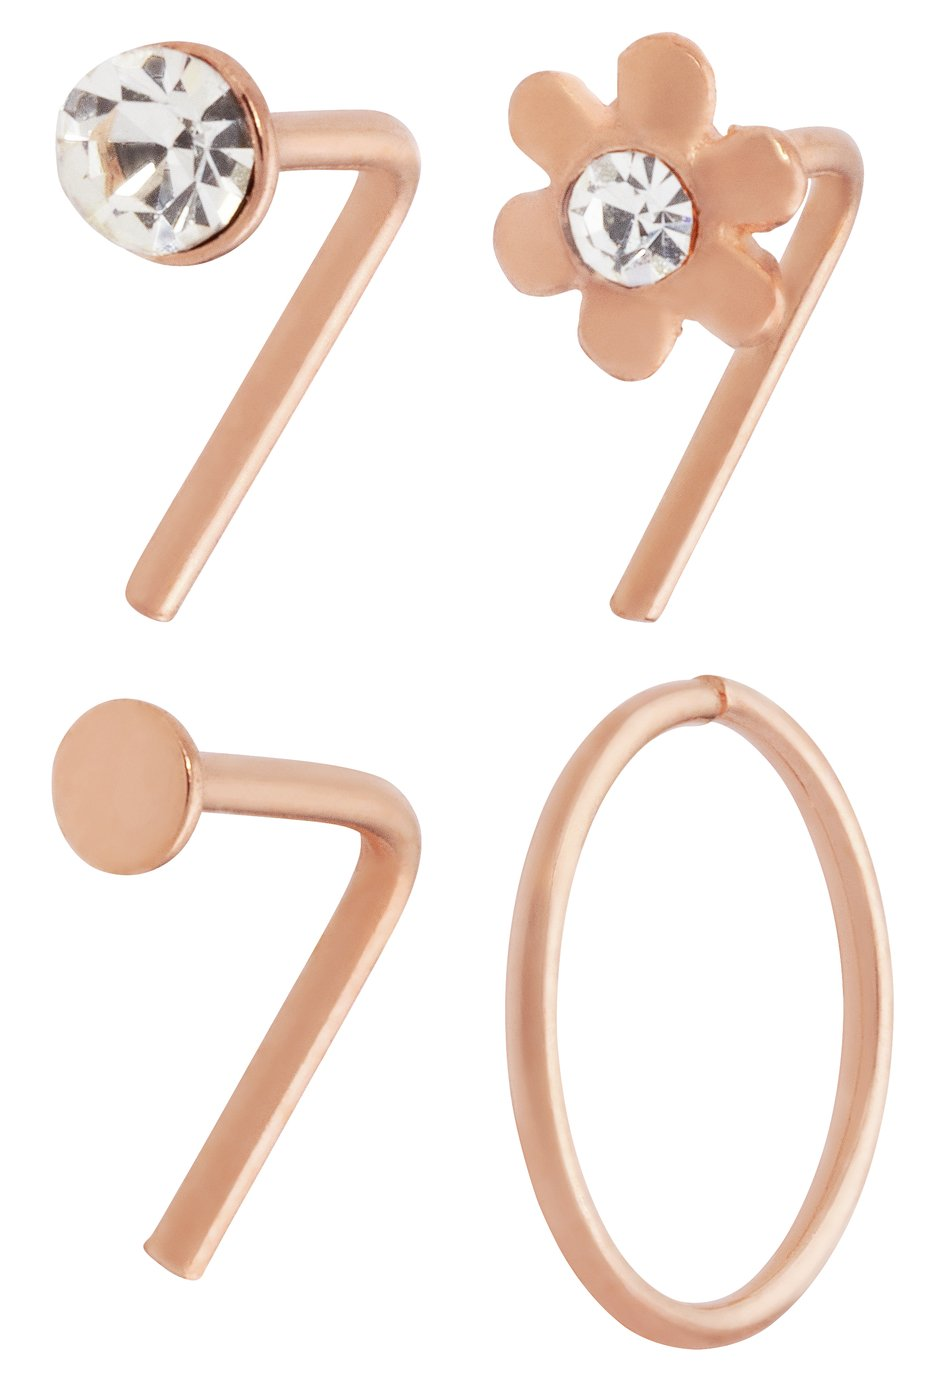 State of Mine 9ct Rose Gold Plated Nose Hoop & Stud Set of 4